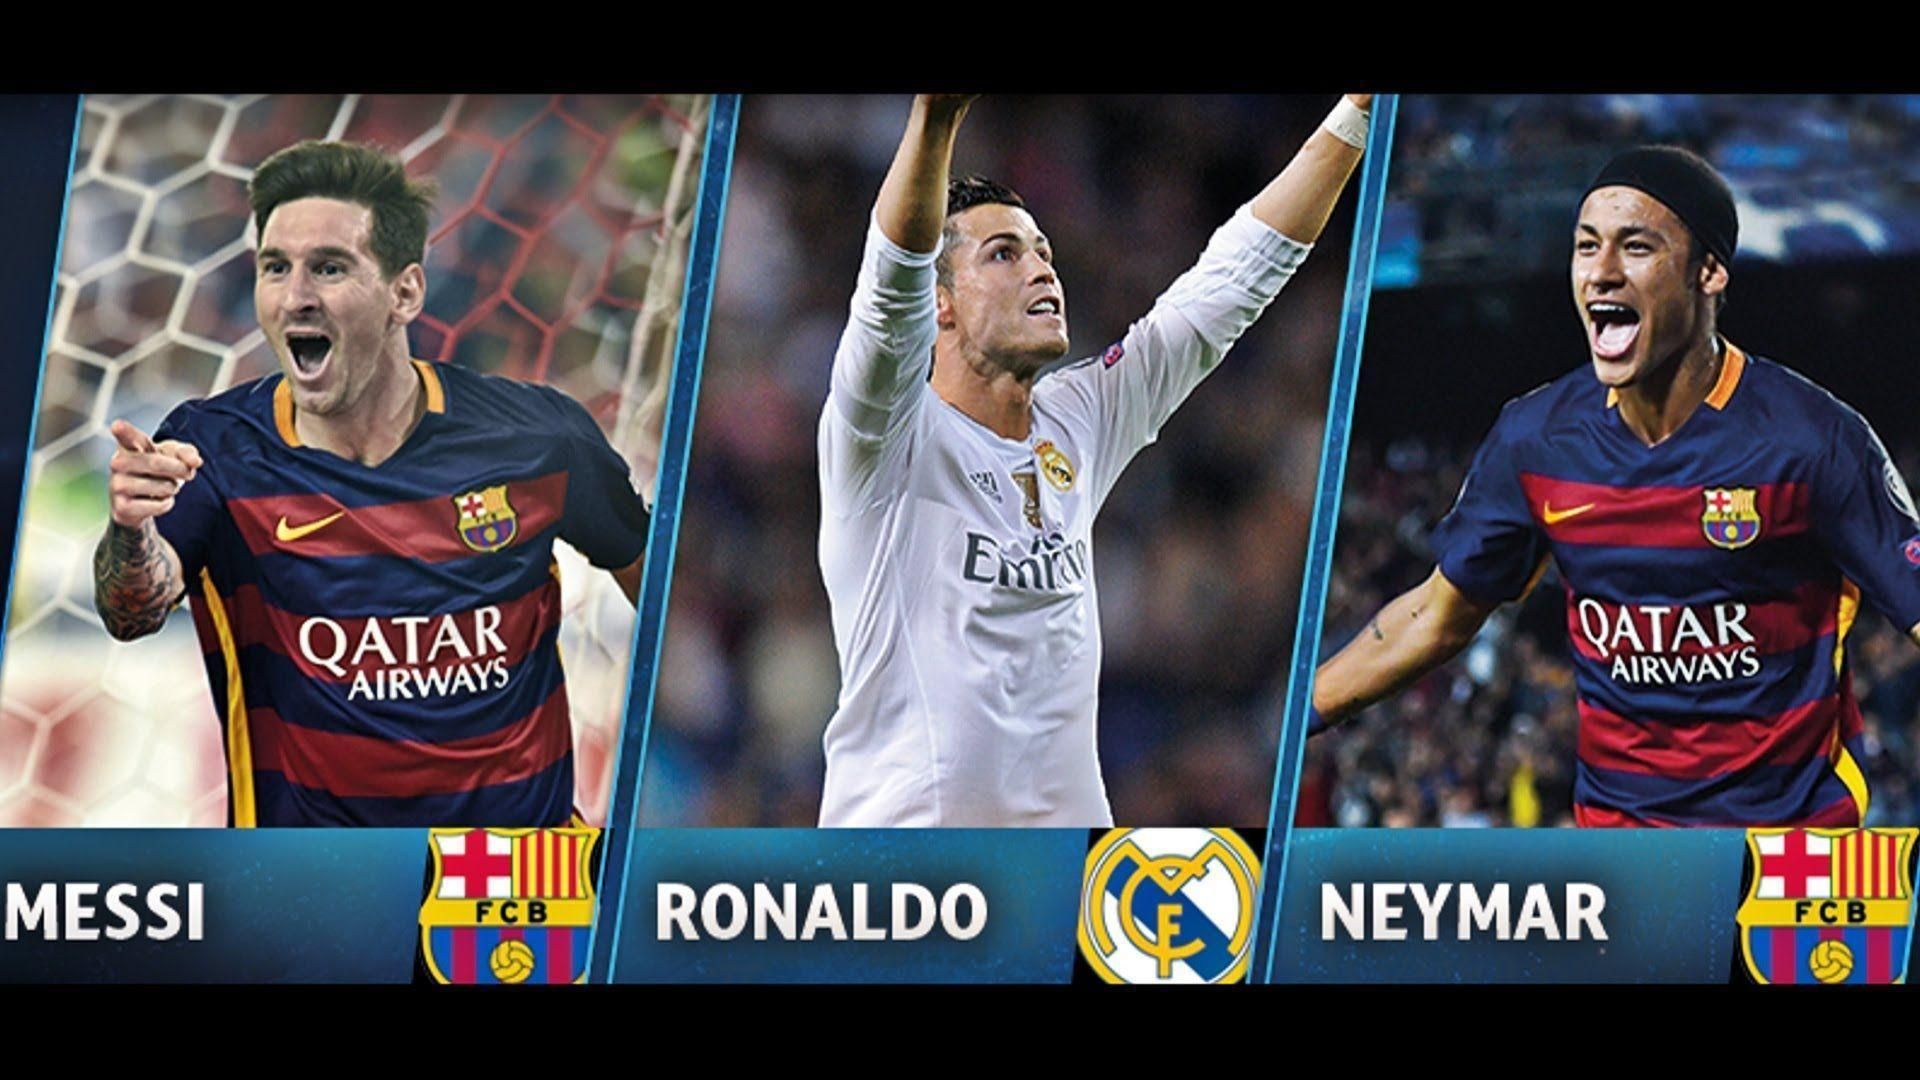 Free Download Messi Vs Ronaldo 2016 Wallpapers 1920x1080 For